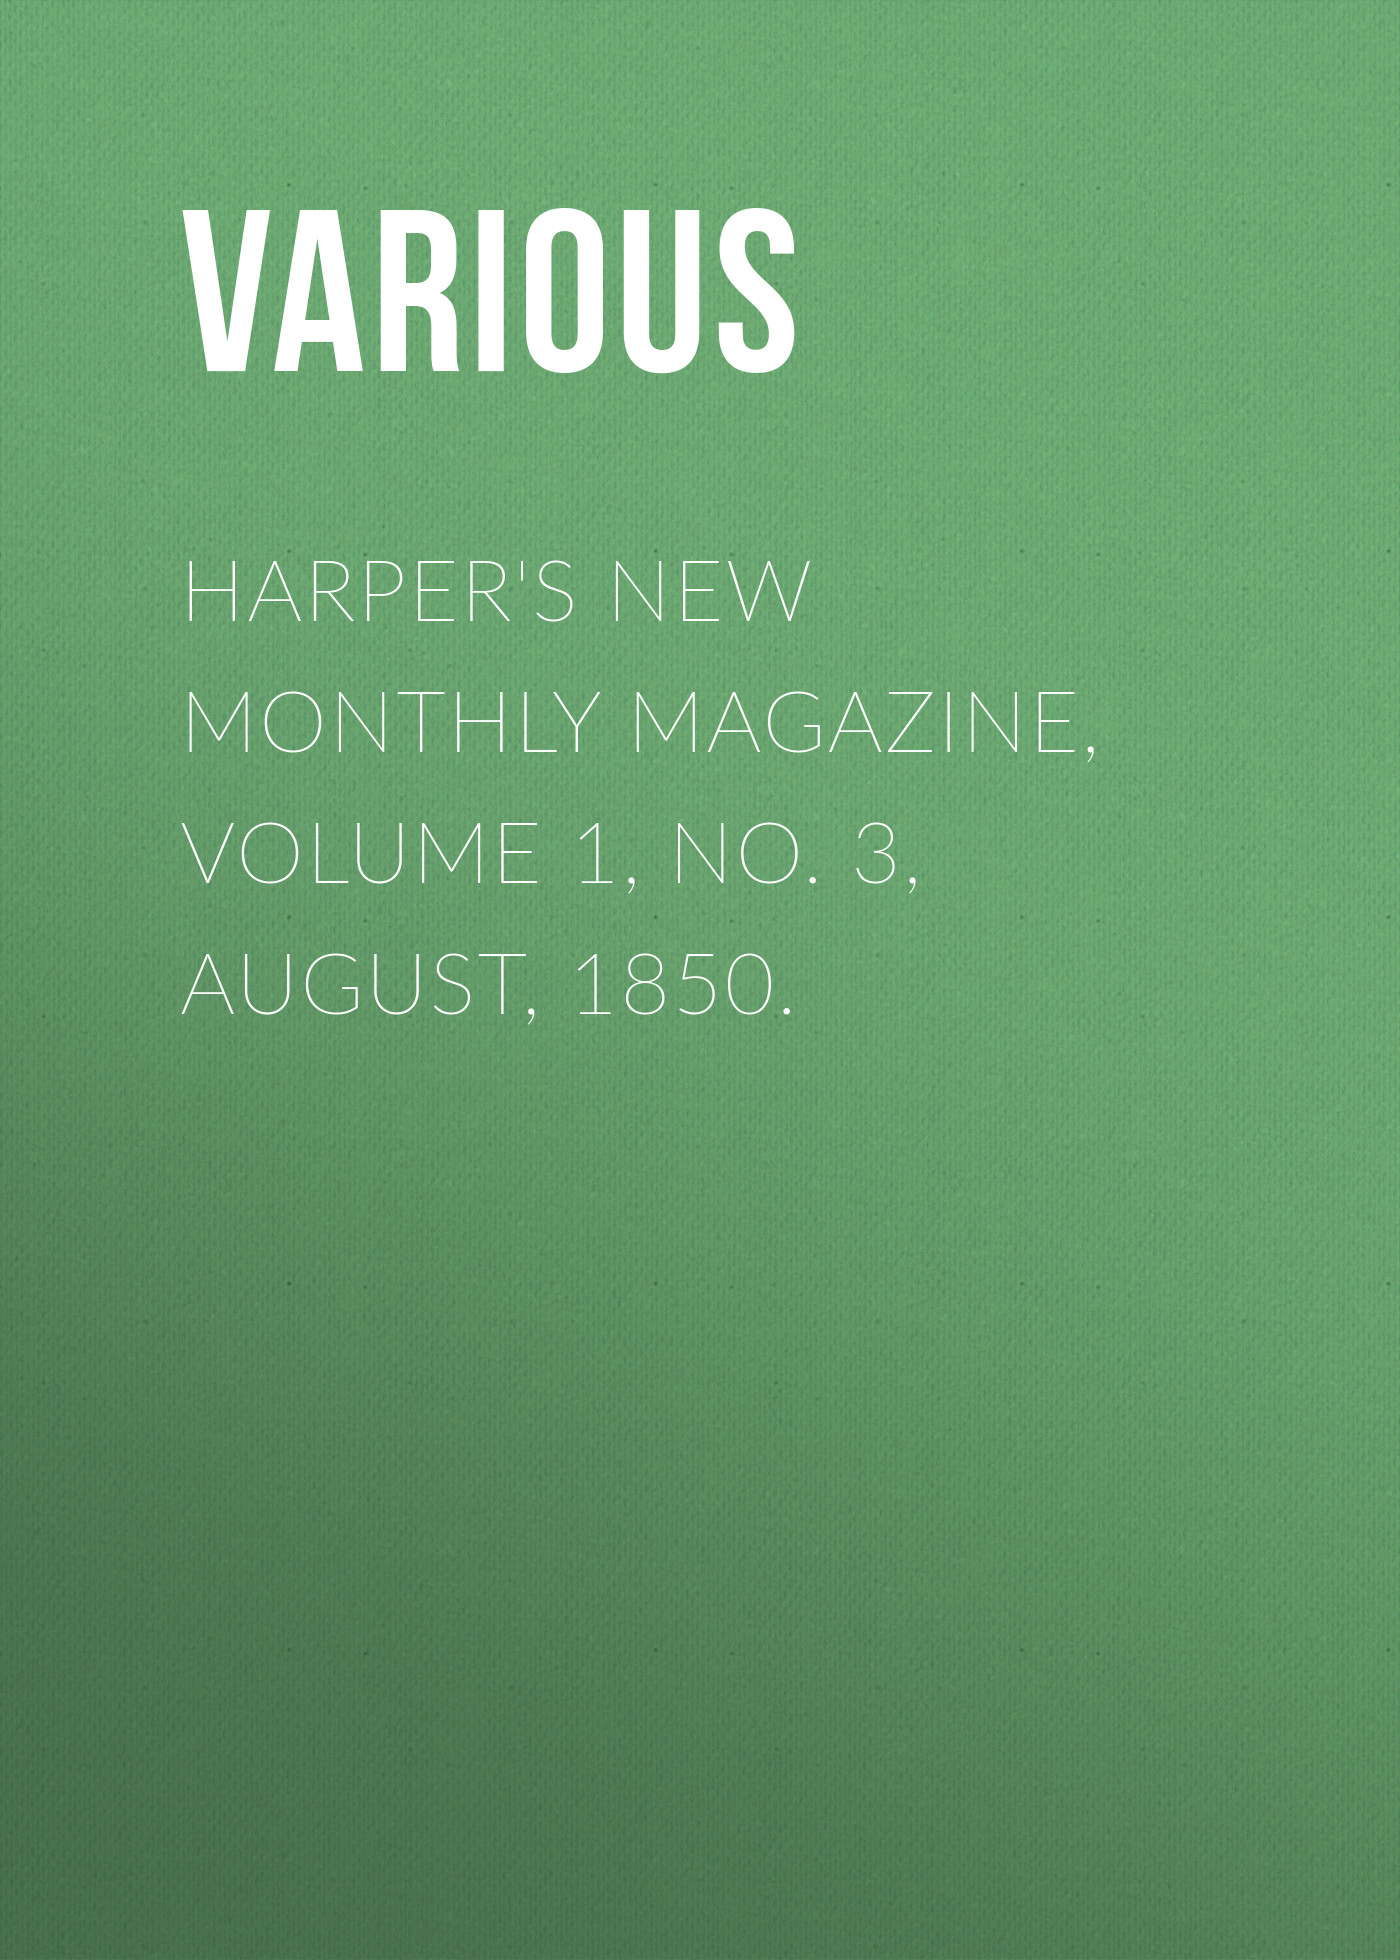 Various Harper's New Monthly Magazine, Volume 1, No. 3, August, 1850. смеситель для кухни lemark benefit lm2505c